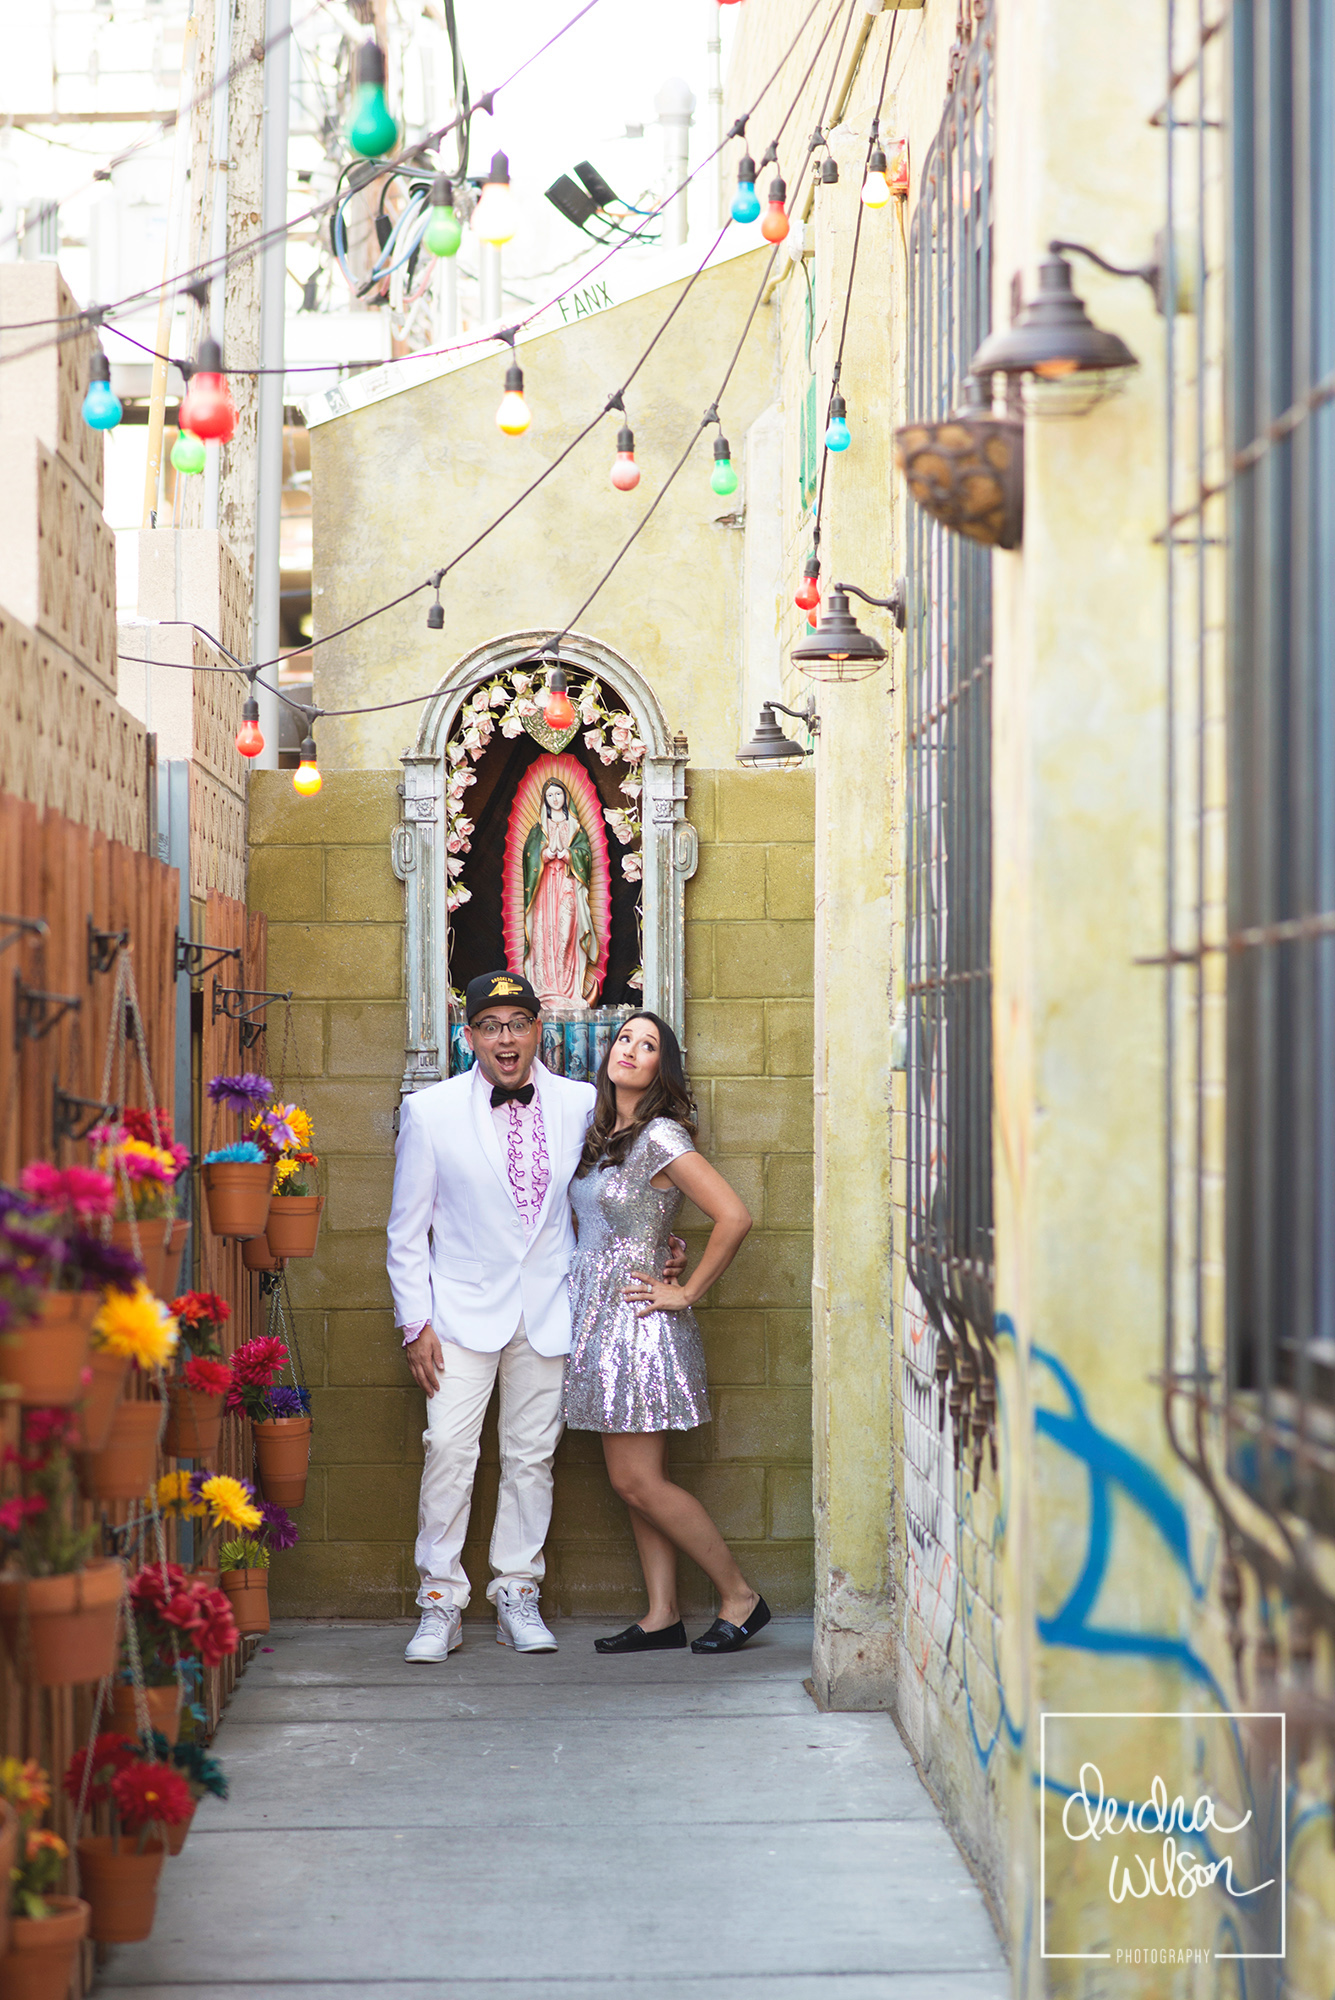 Las Vegas Engagement Portraits Can Be One Of A Kind Lots My Clients Fly Into For Fun And Decide To Commemorate The Occasion With Quick Session